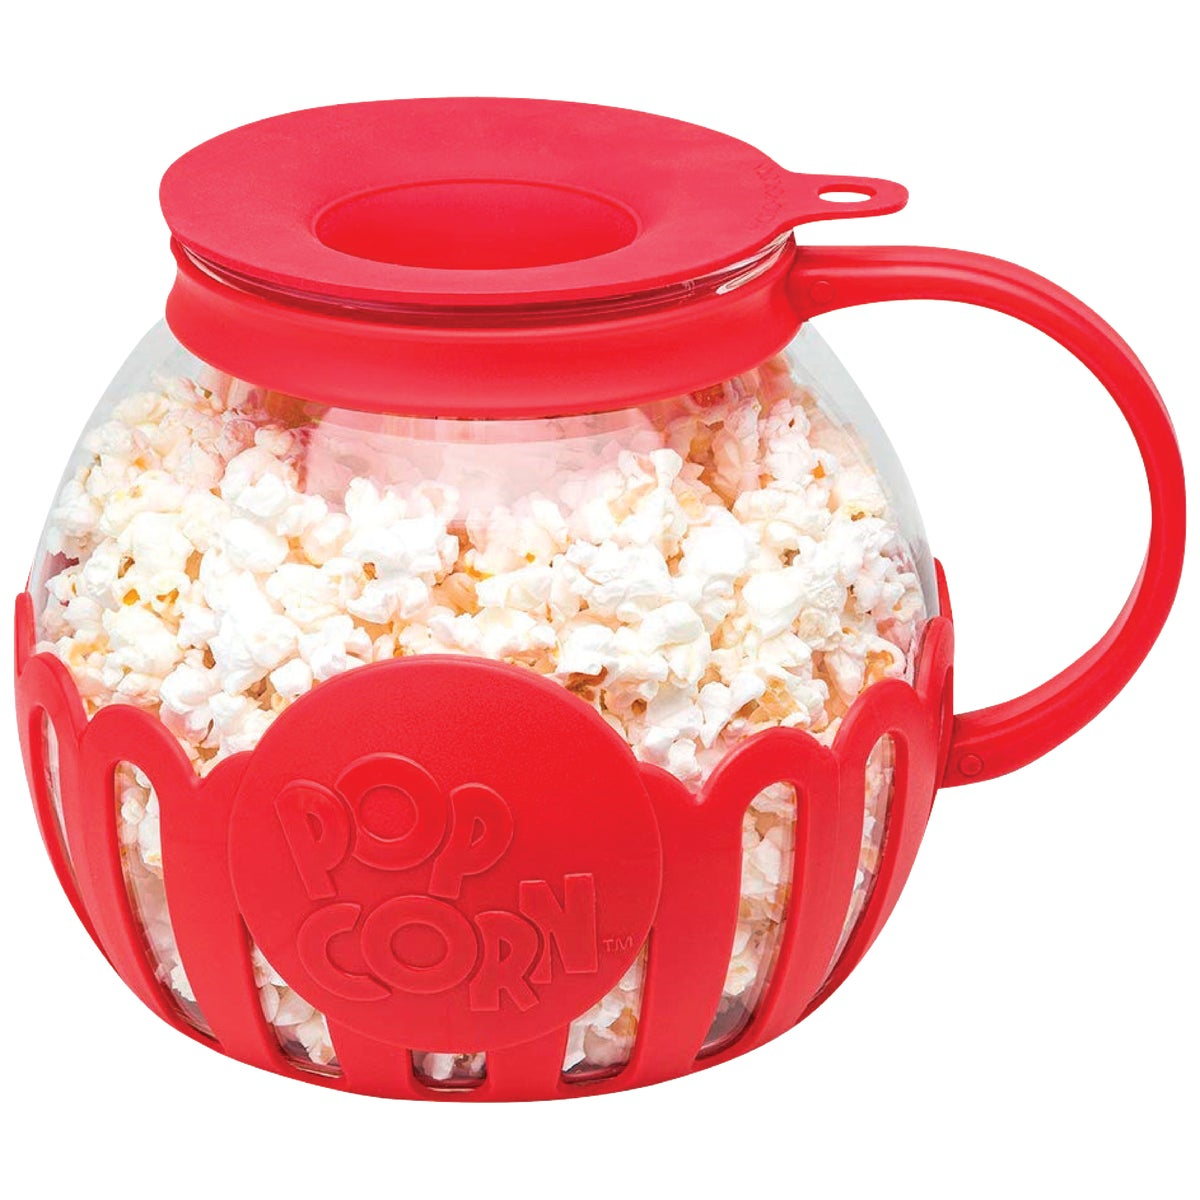 MICRO POP POPCORN POPPER - EKPCM-0025 by Epoca Inc